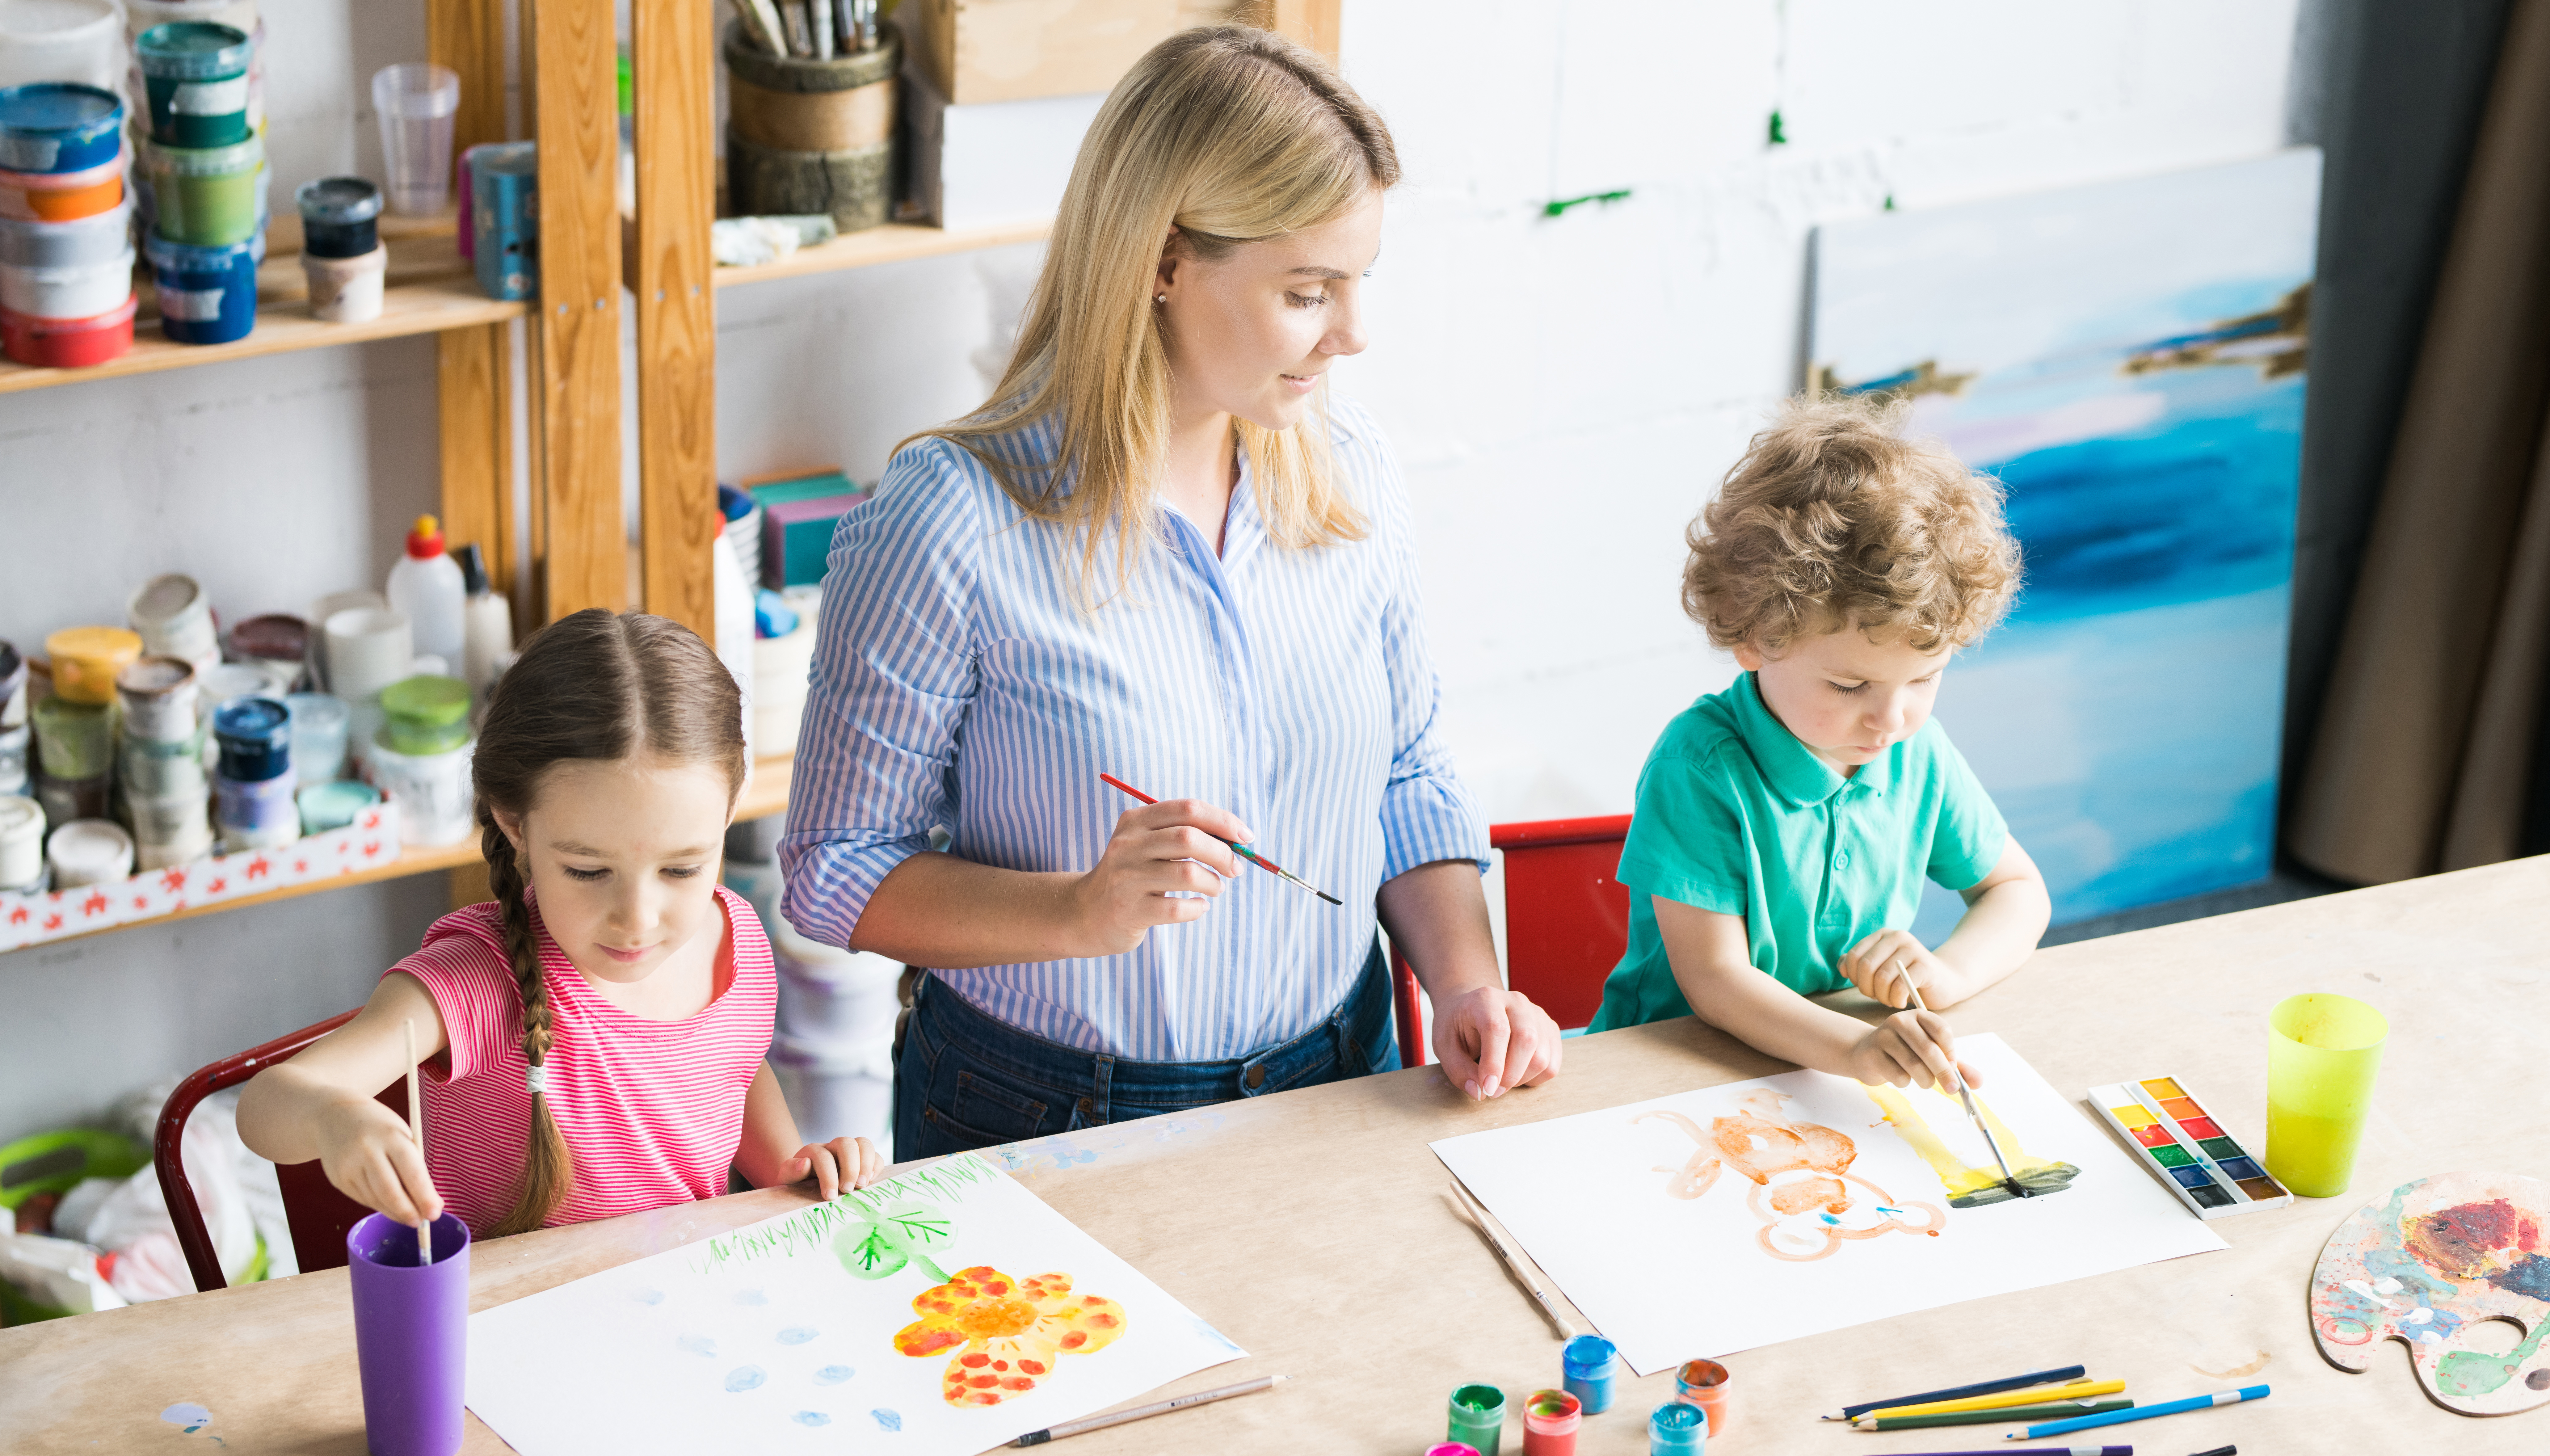 Children drawing a picture with paints and young teacher assisting them